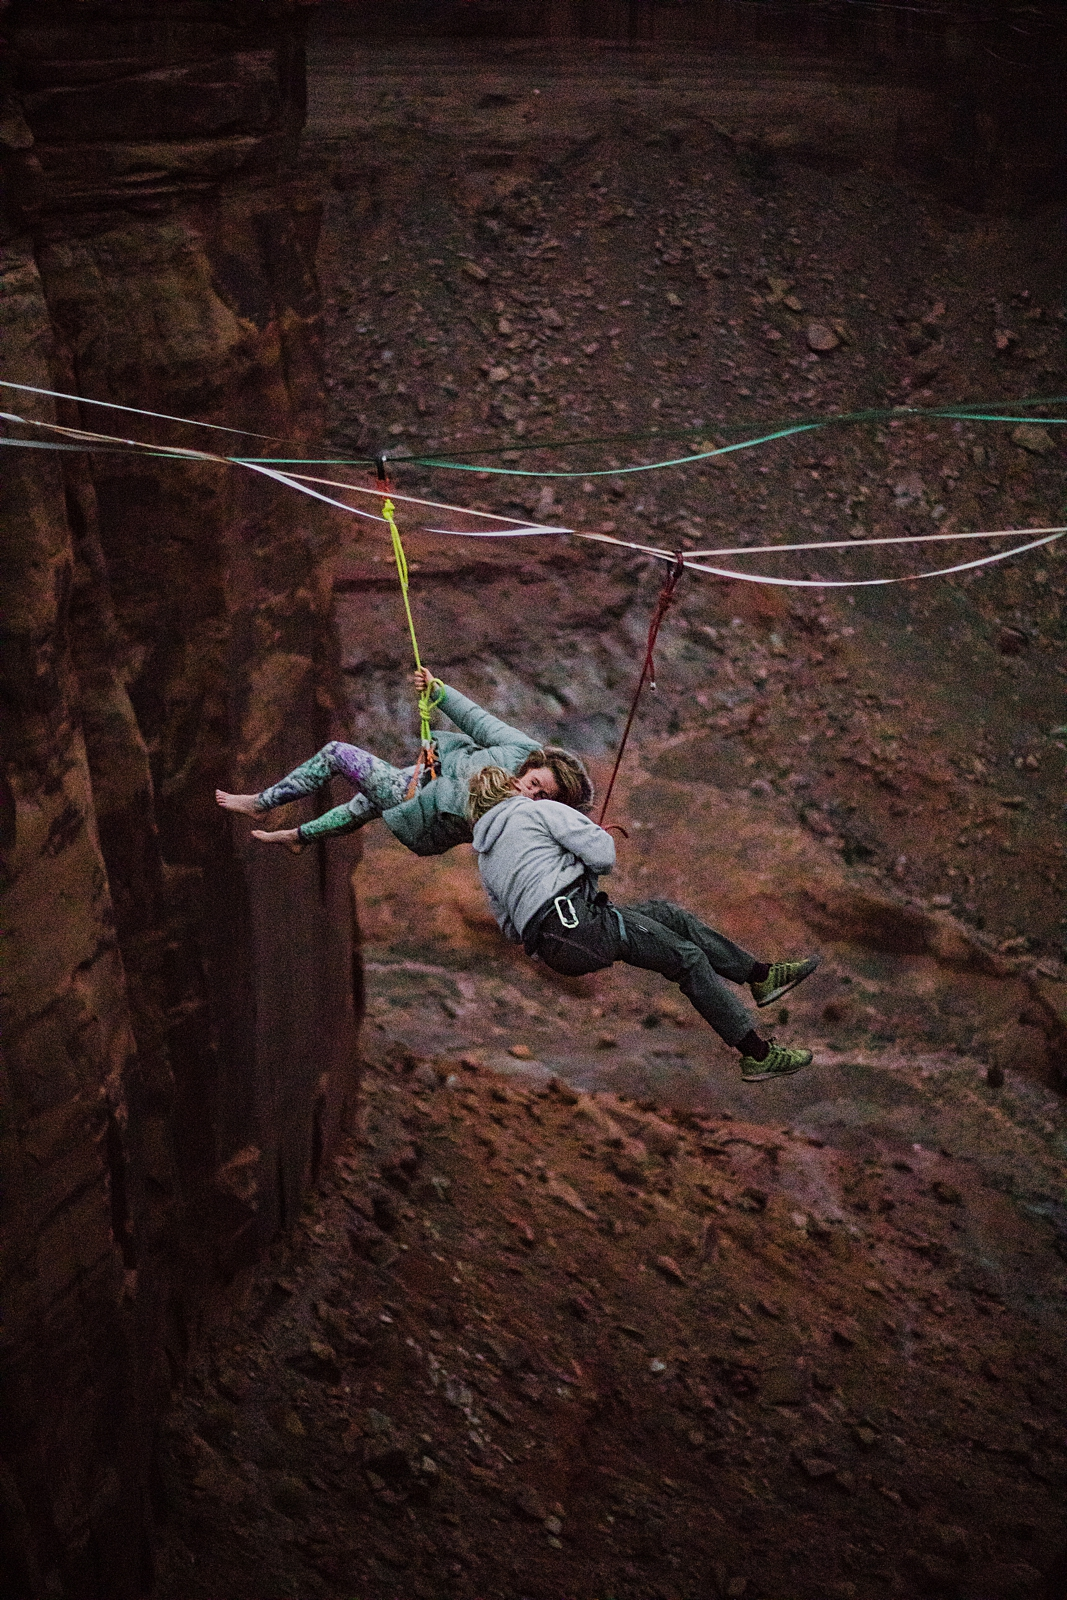 sunset highlining at the fruitbowl, couple kissing on highlines, moab utah, engagements, desert love, hiking in moab, hiking in canyonlands national park, fruit bowl elopement, highlining elopement